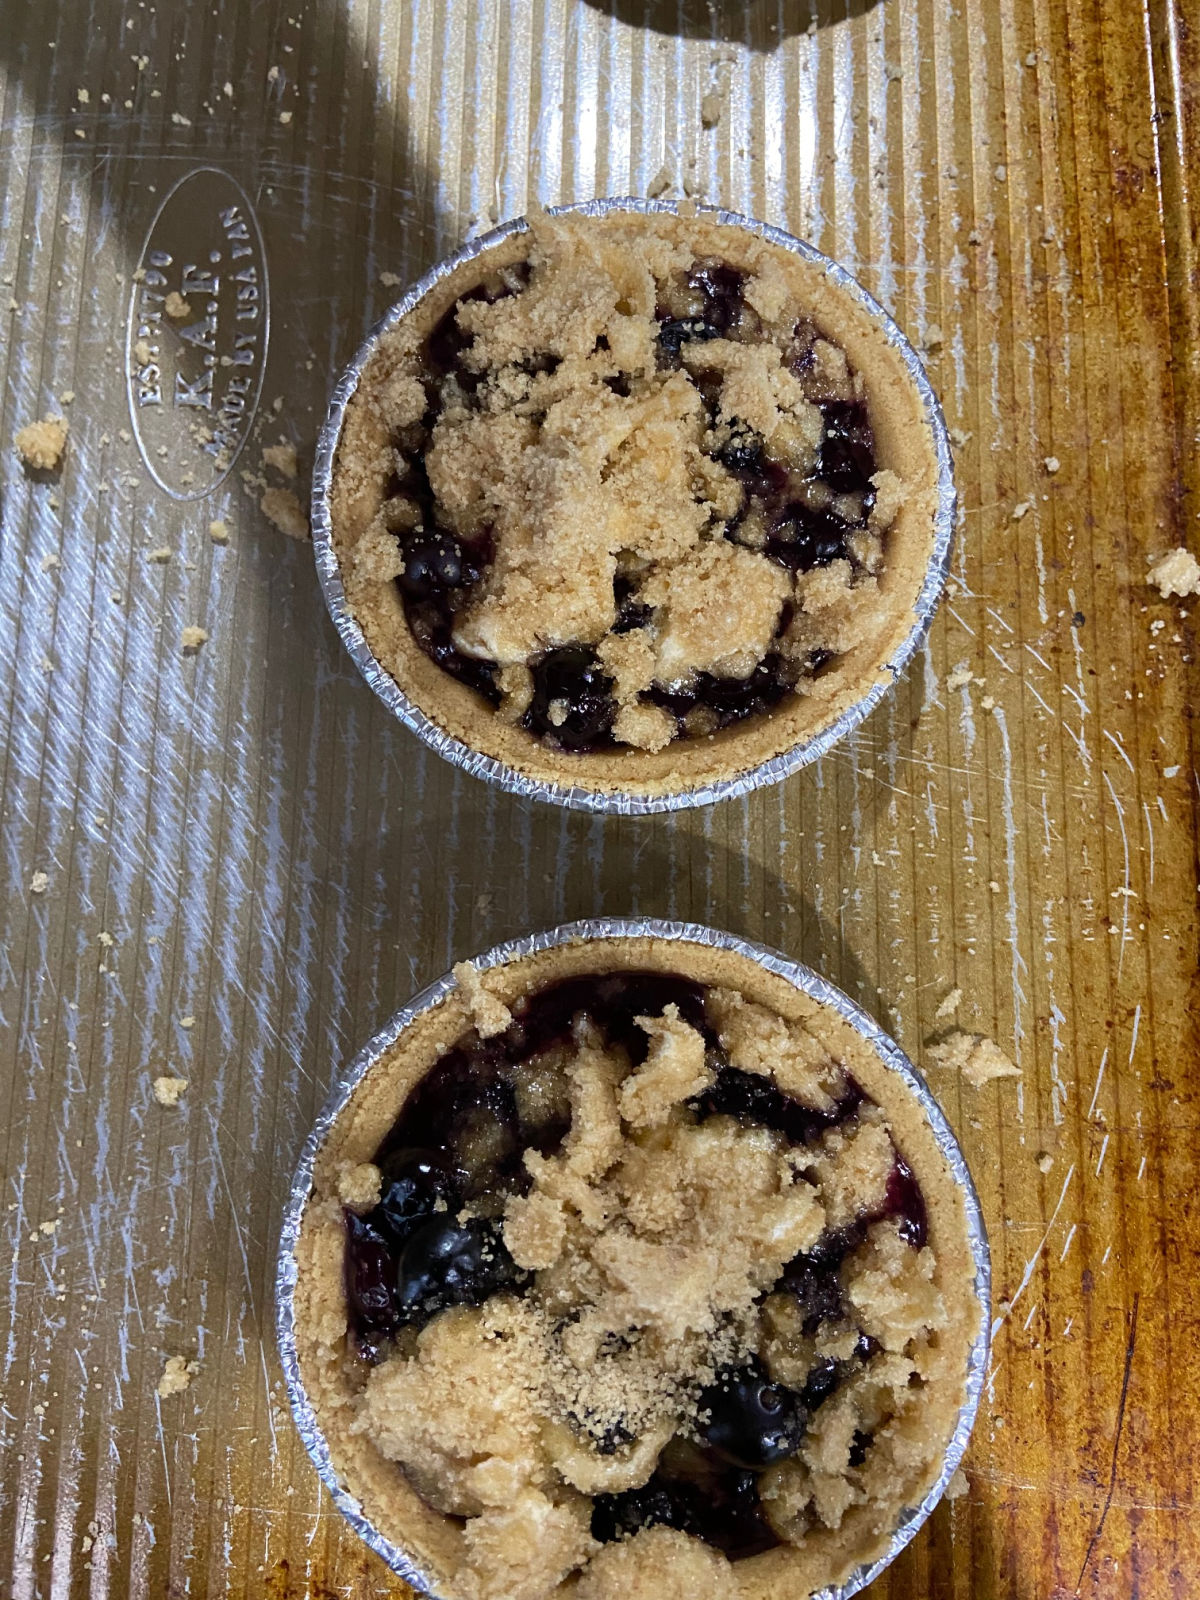 Mini pies on a cooking sheet with uncooked blueberry filling inside.